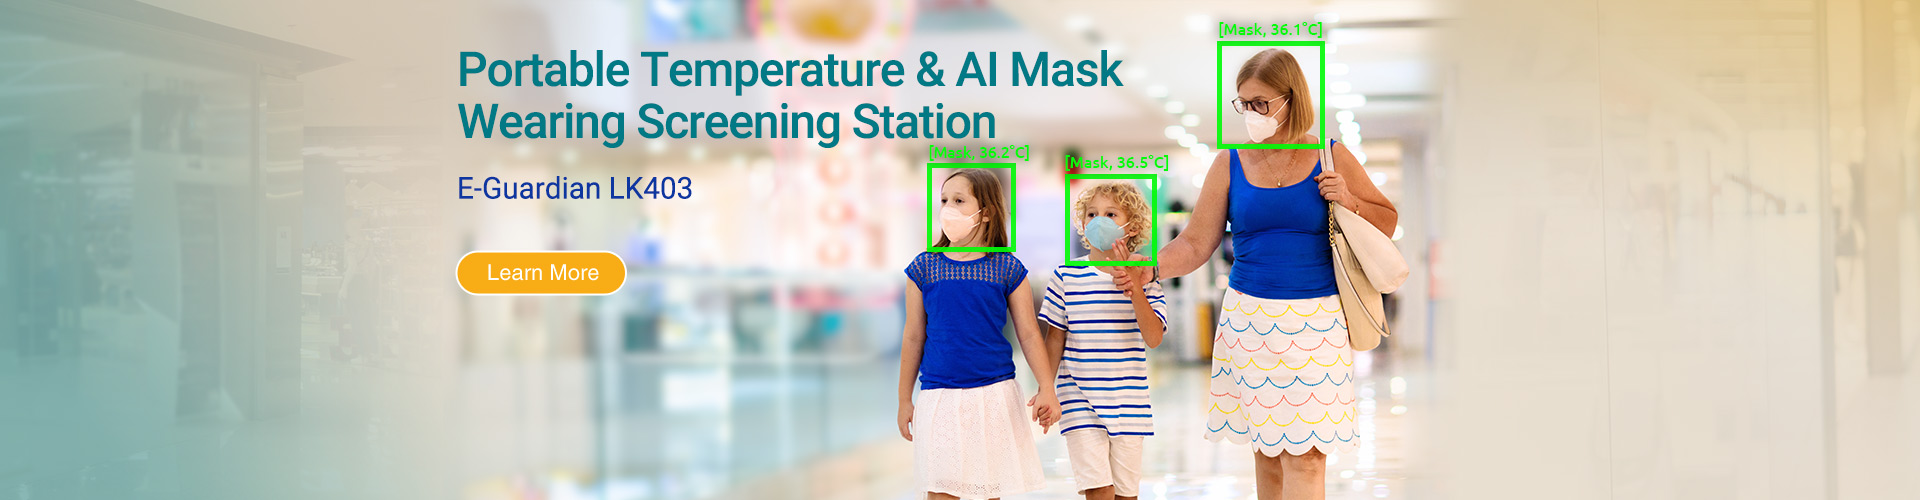 Portable Temperature & AI Mask Wearing Screening Station